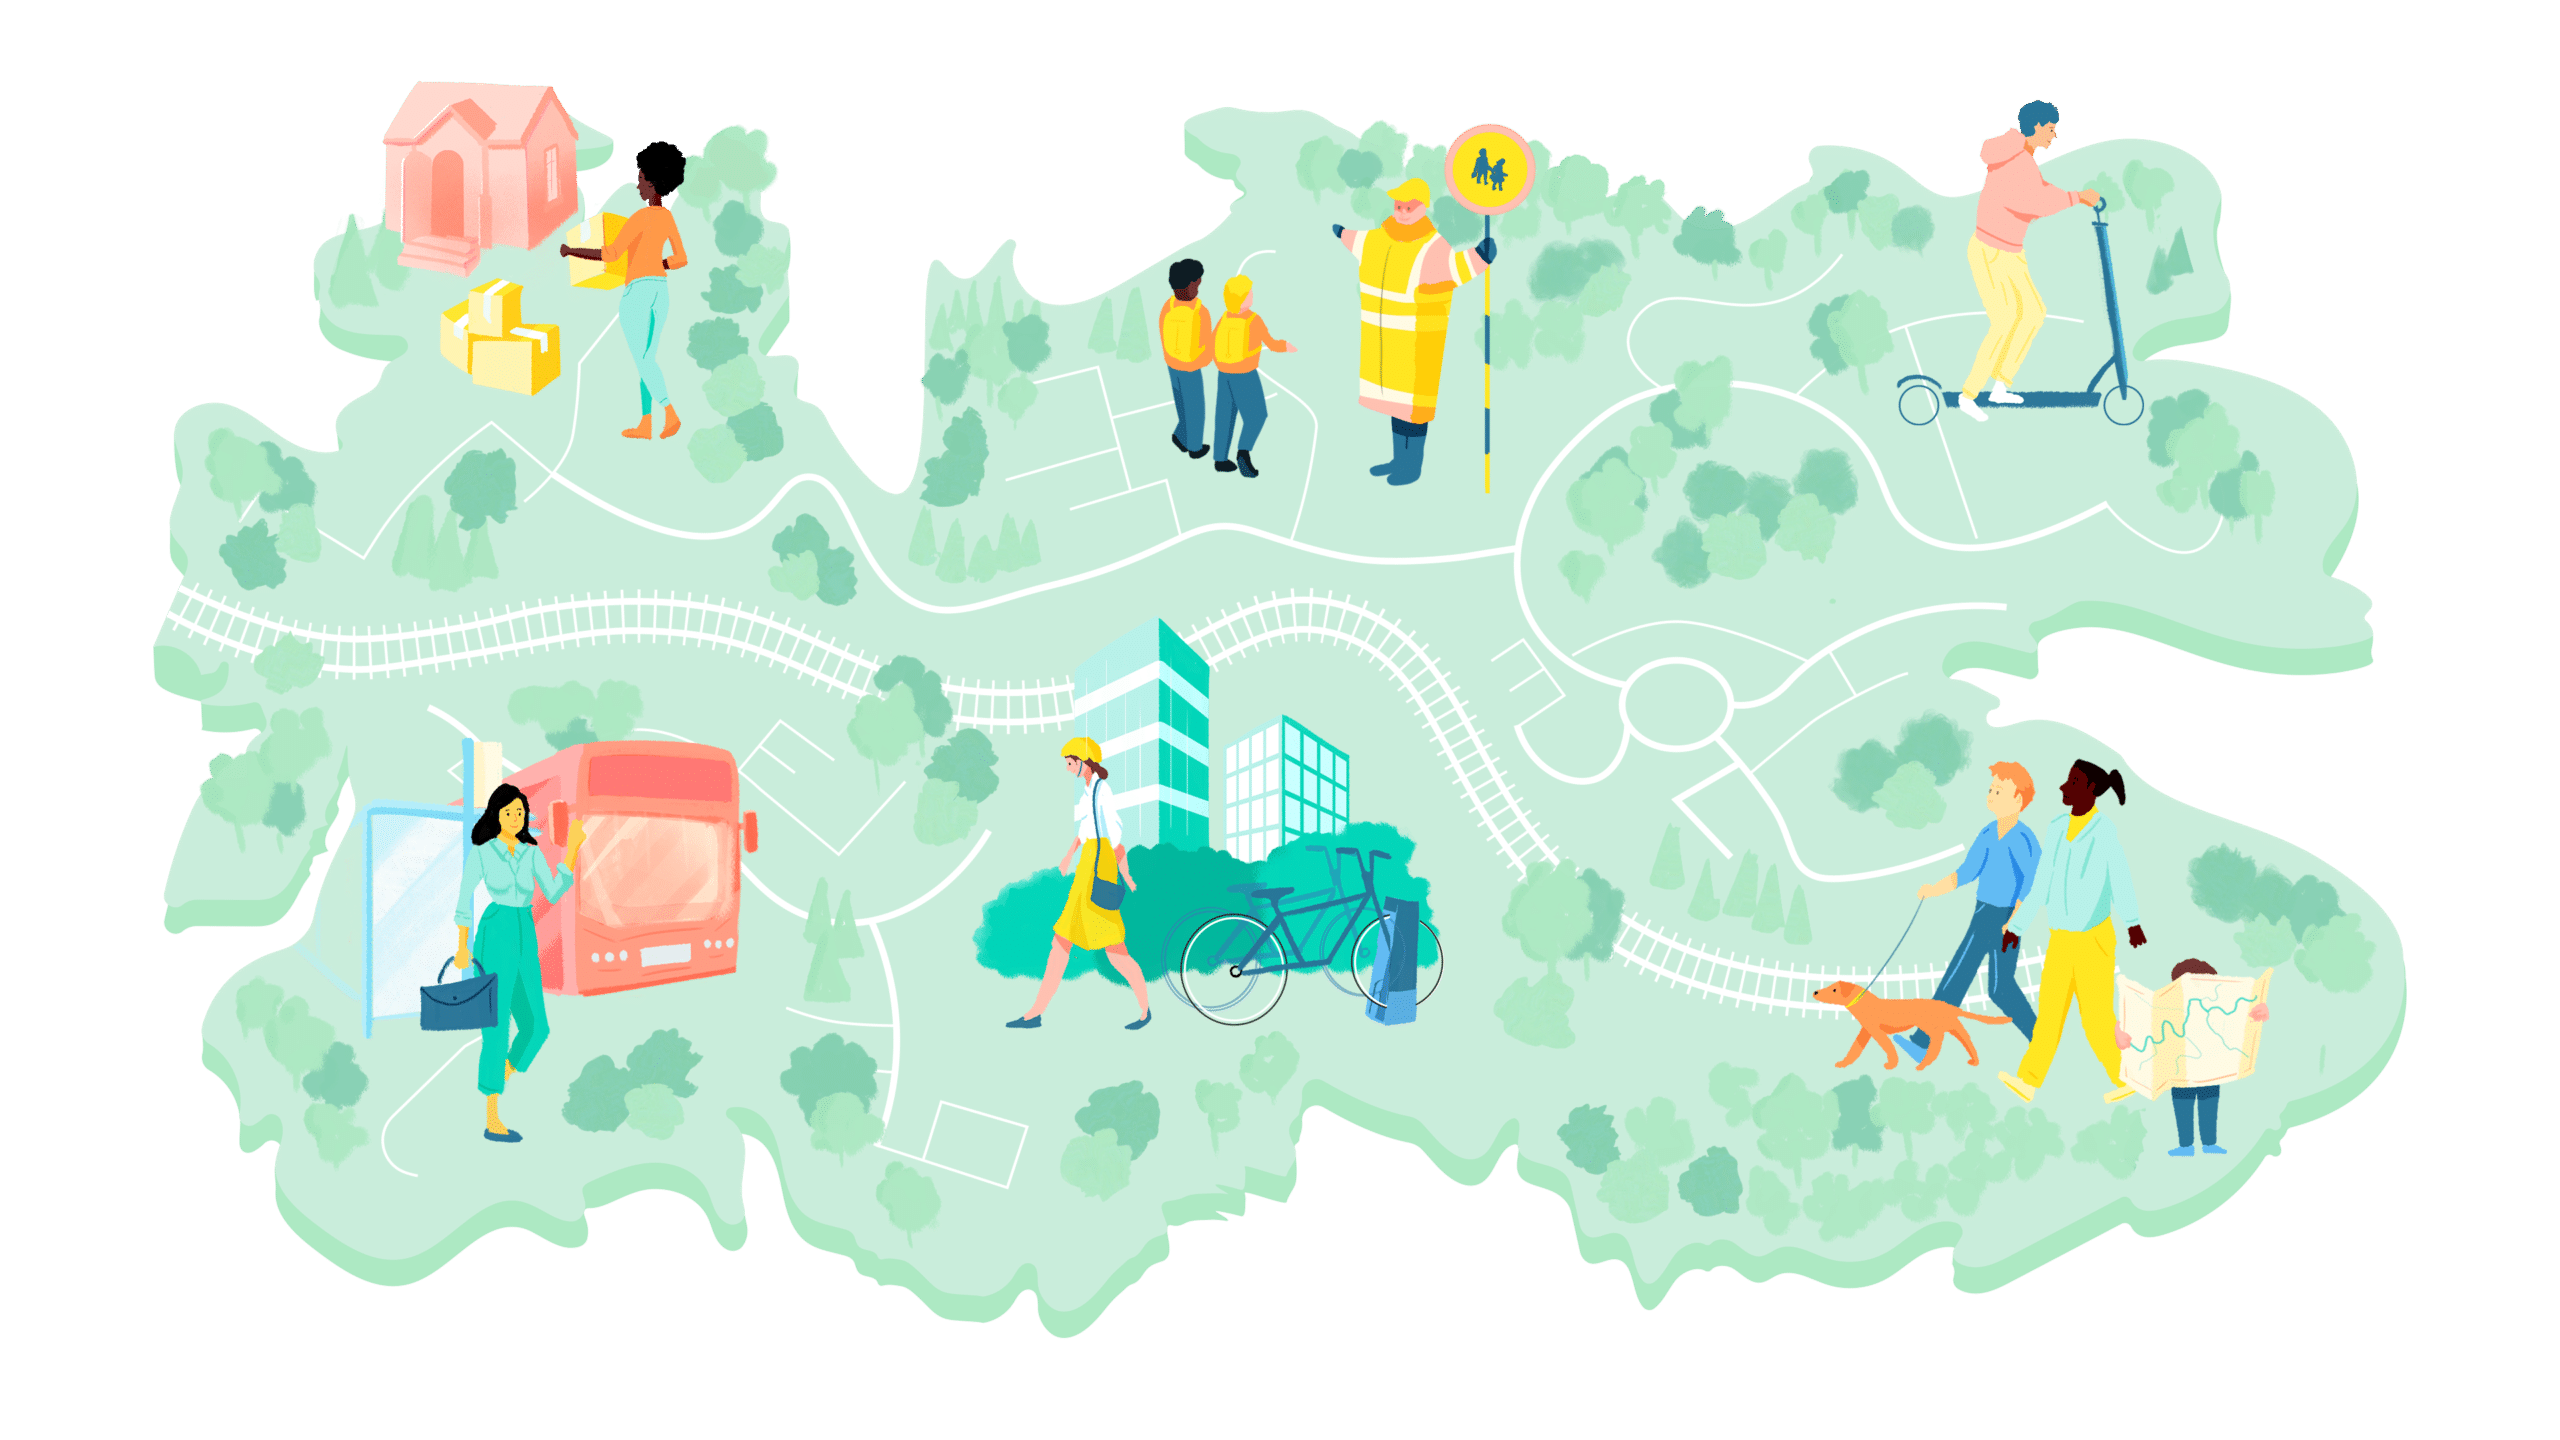 engagement map with illustrations of people using different modes of transport and moving home